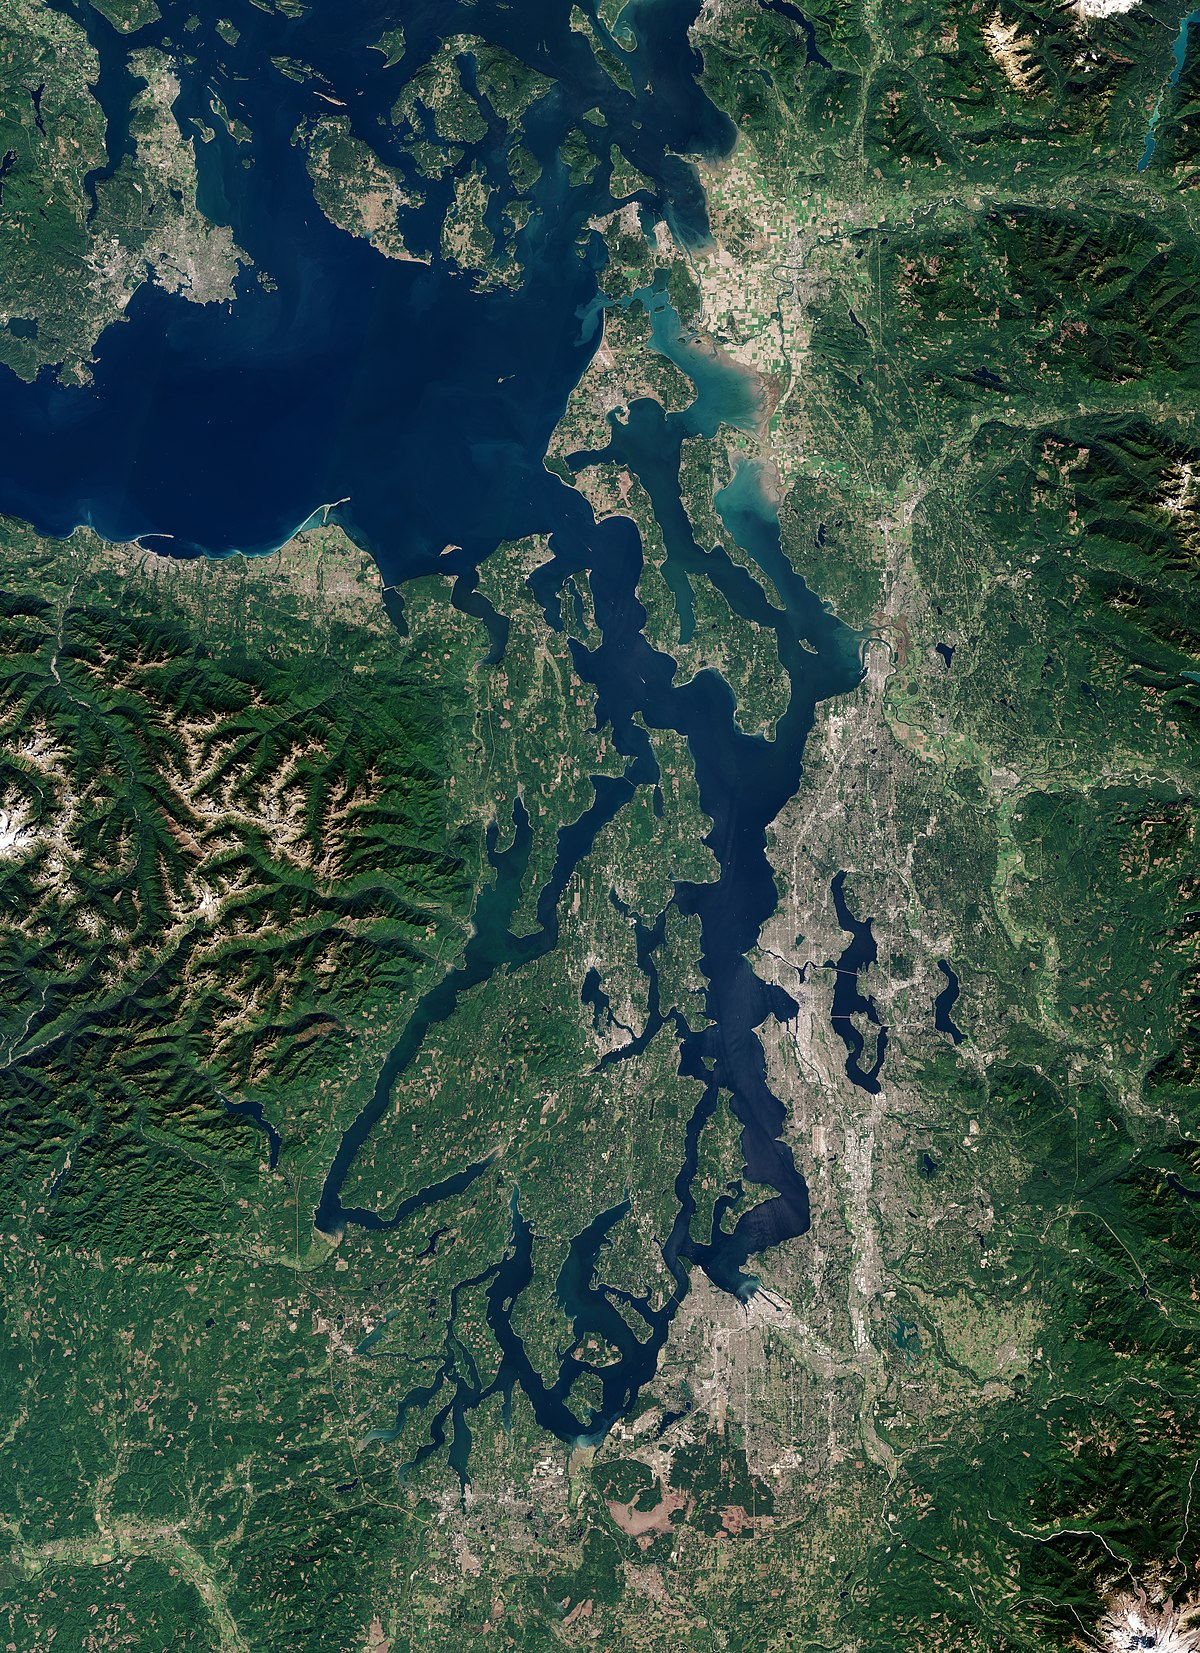 Puget Sound - Wikipedia on straits of the world map, gulfs of the world map, shadow of the world map, peninsulas of the world map, lakes of the world map, names of the world map, bays of the world map,